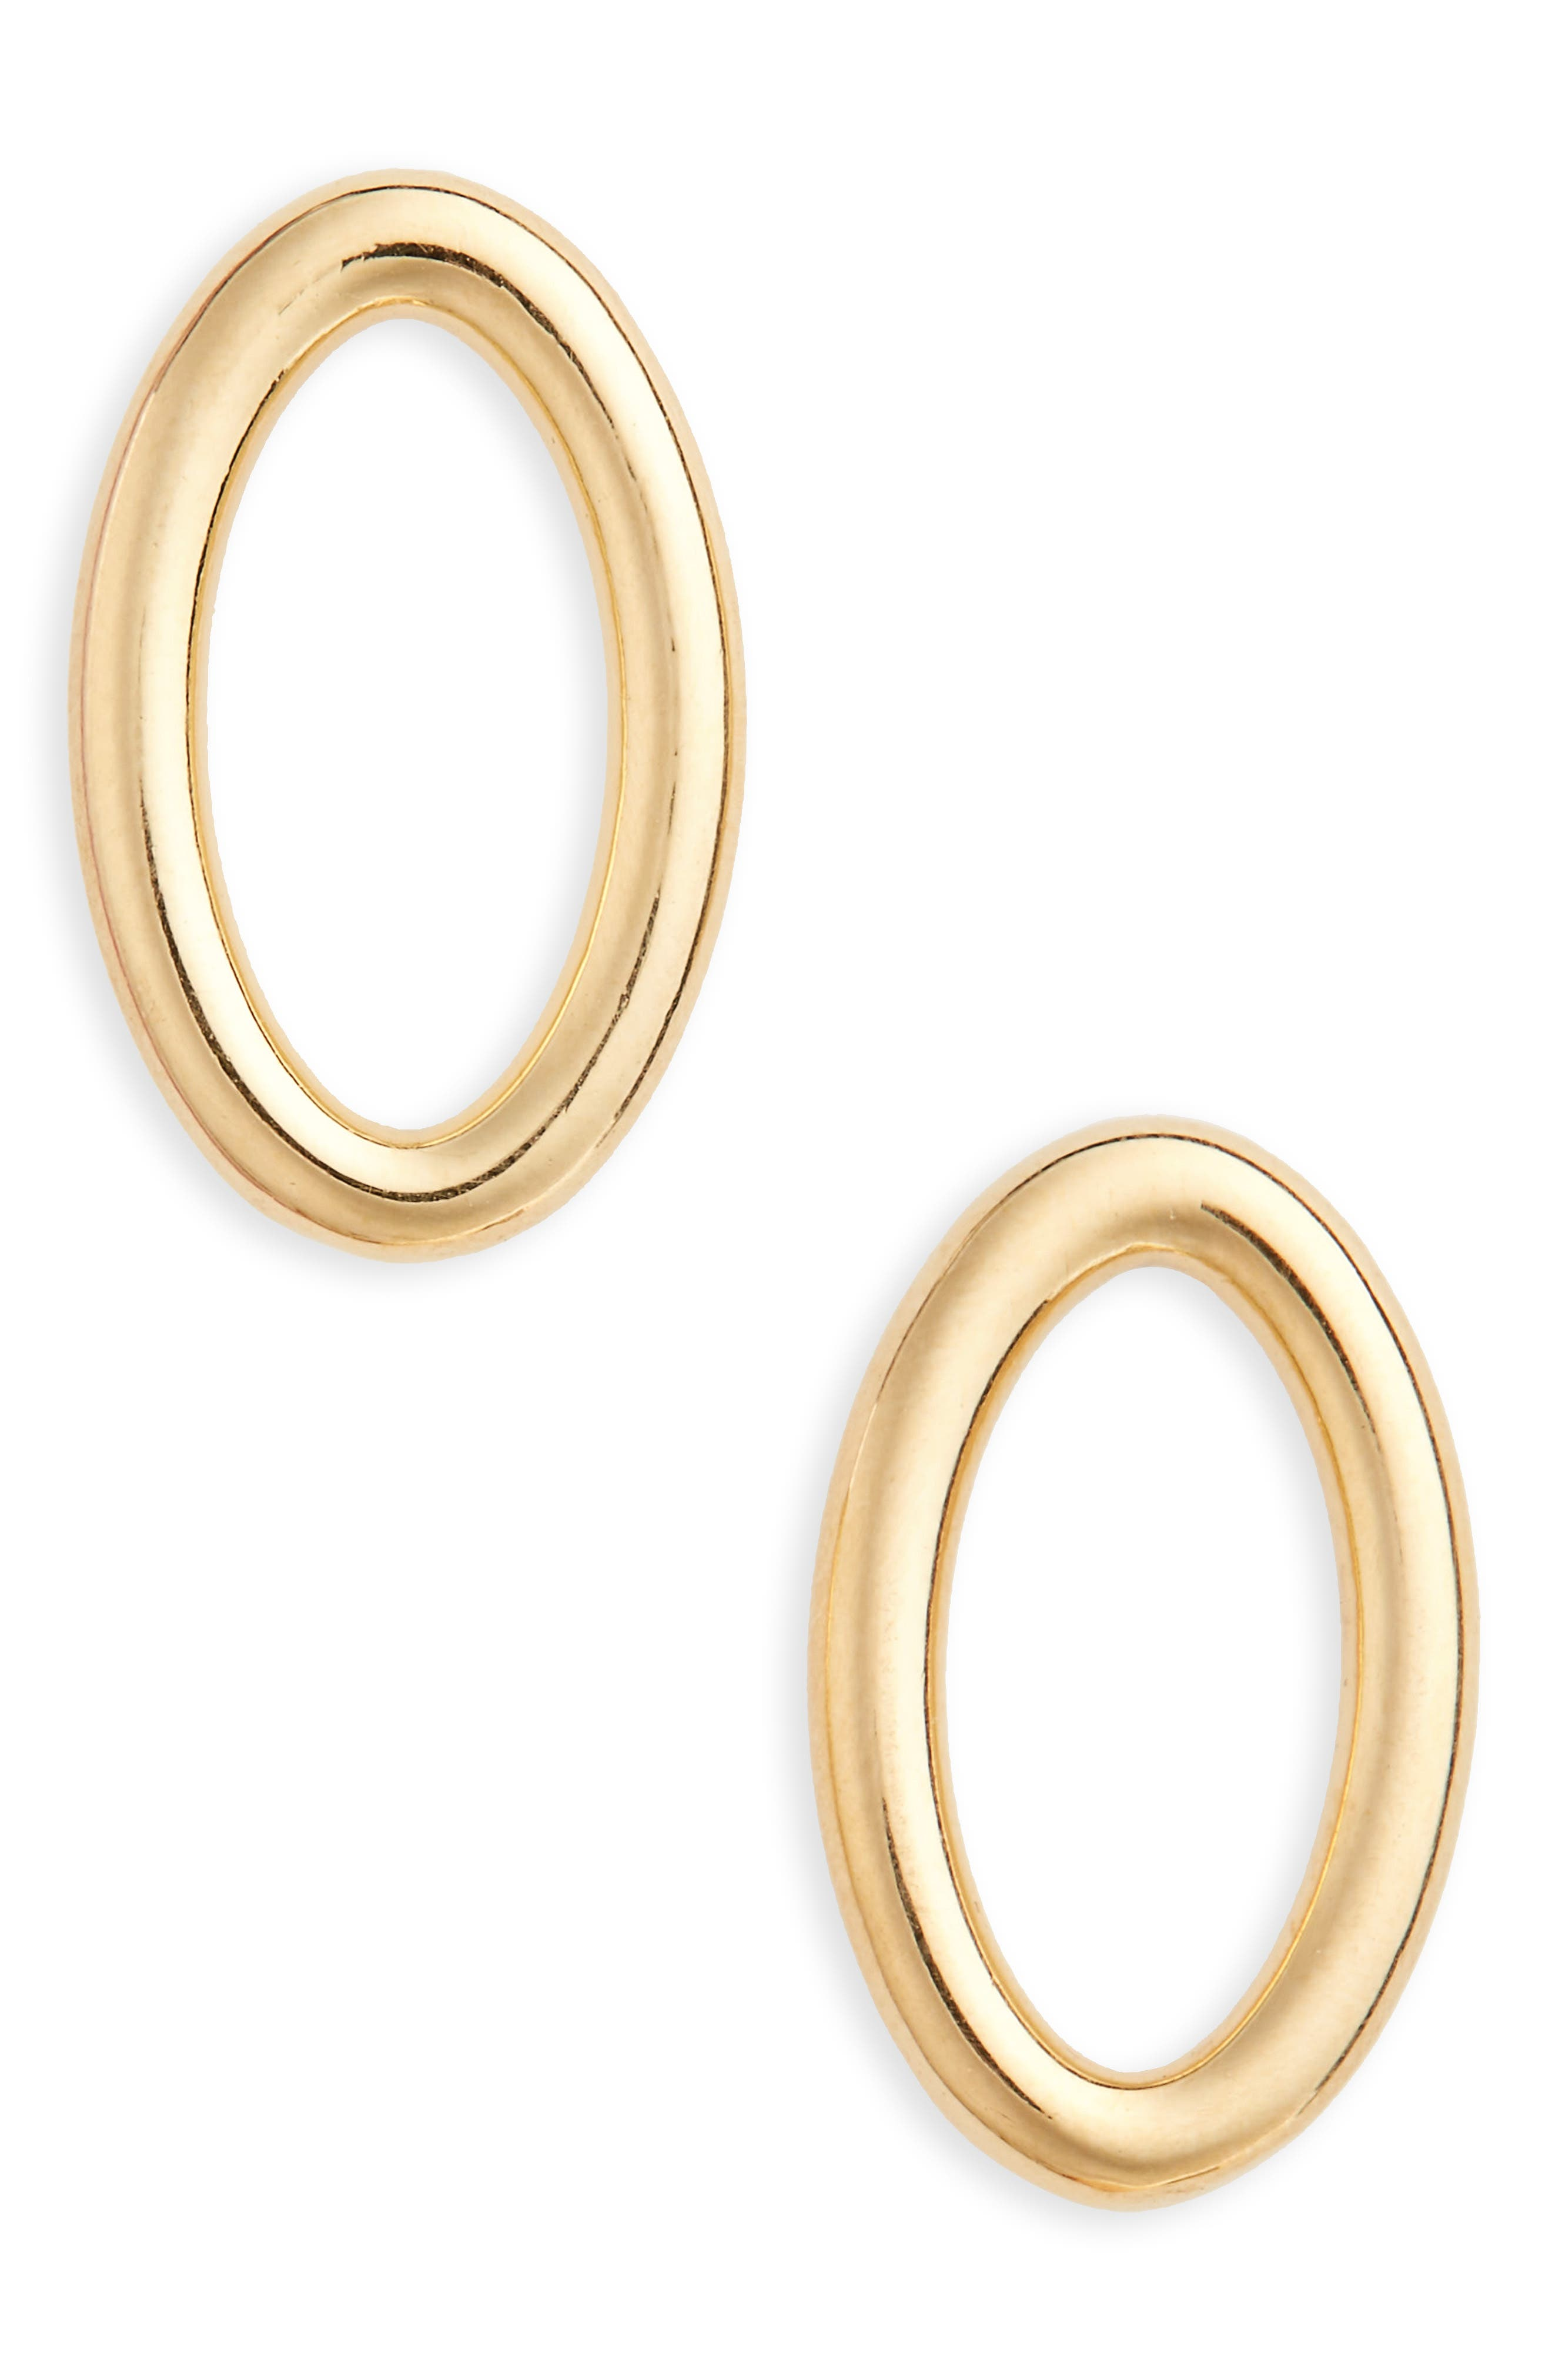 Small Ellipse Polished Earrings,                         Main,                         color, Polished Vermeil